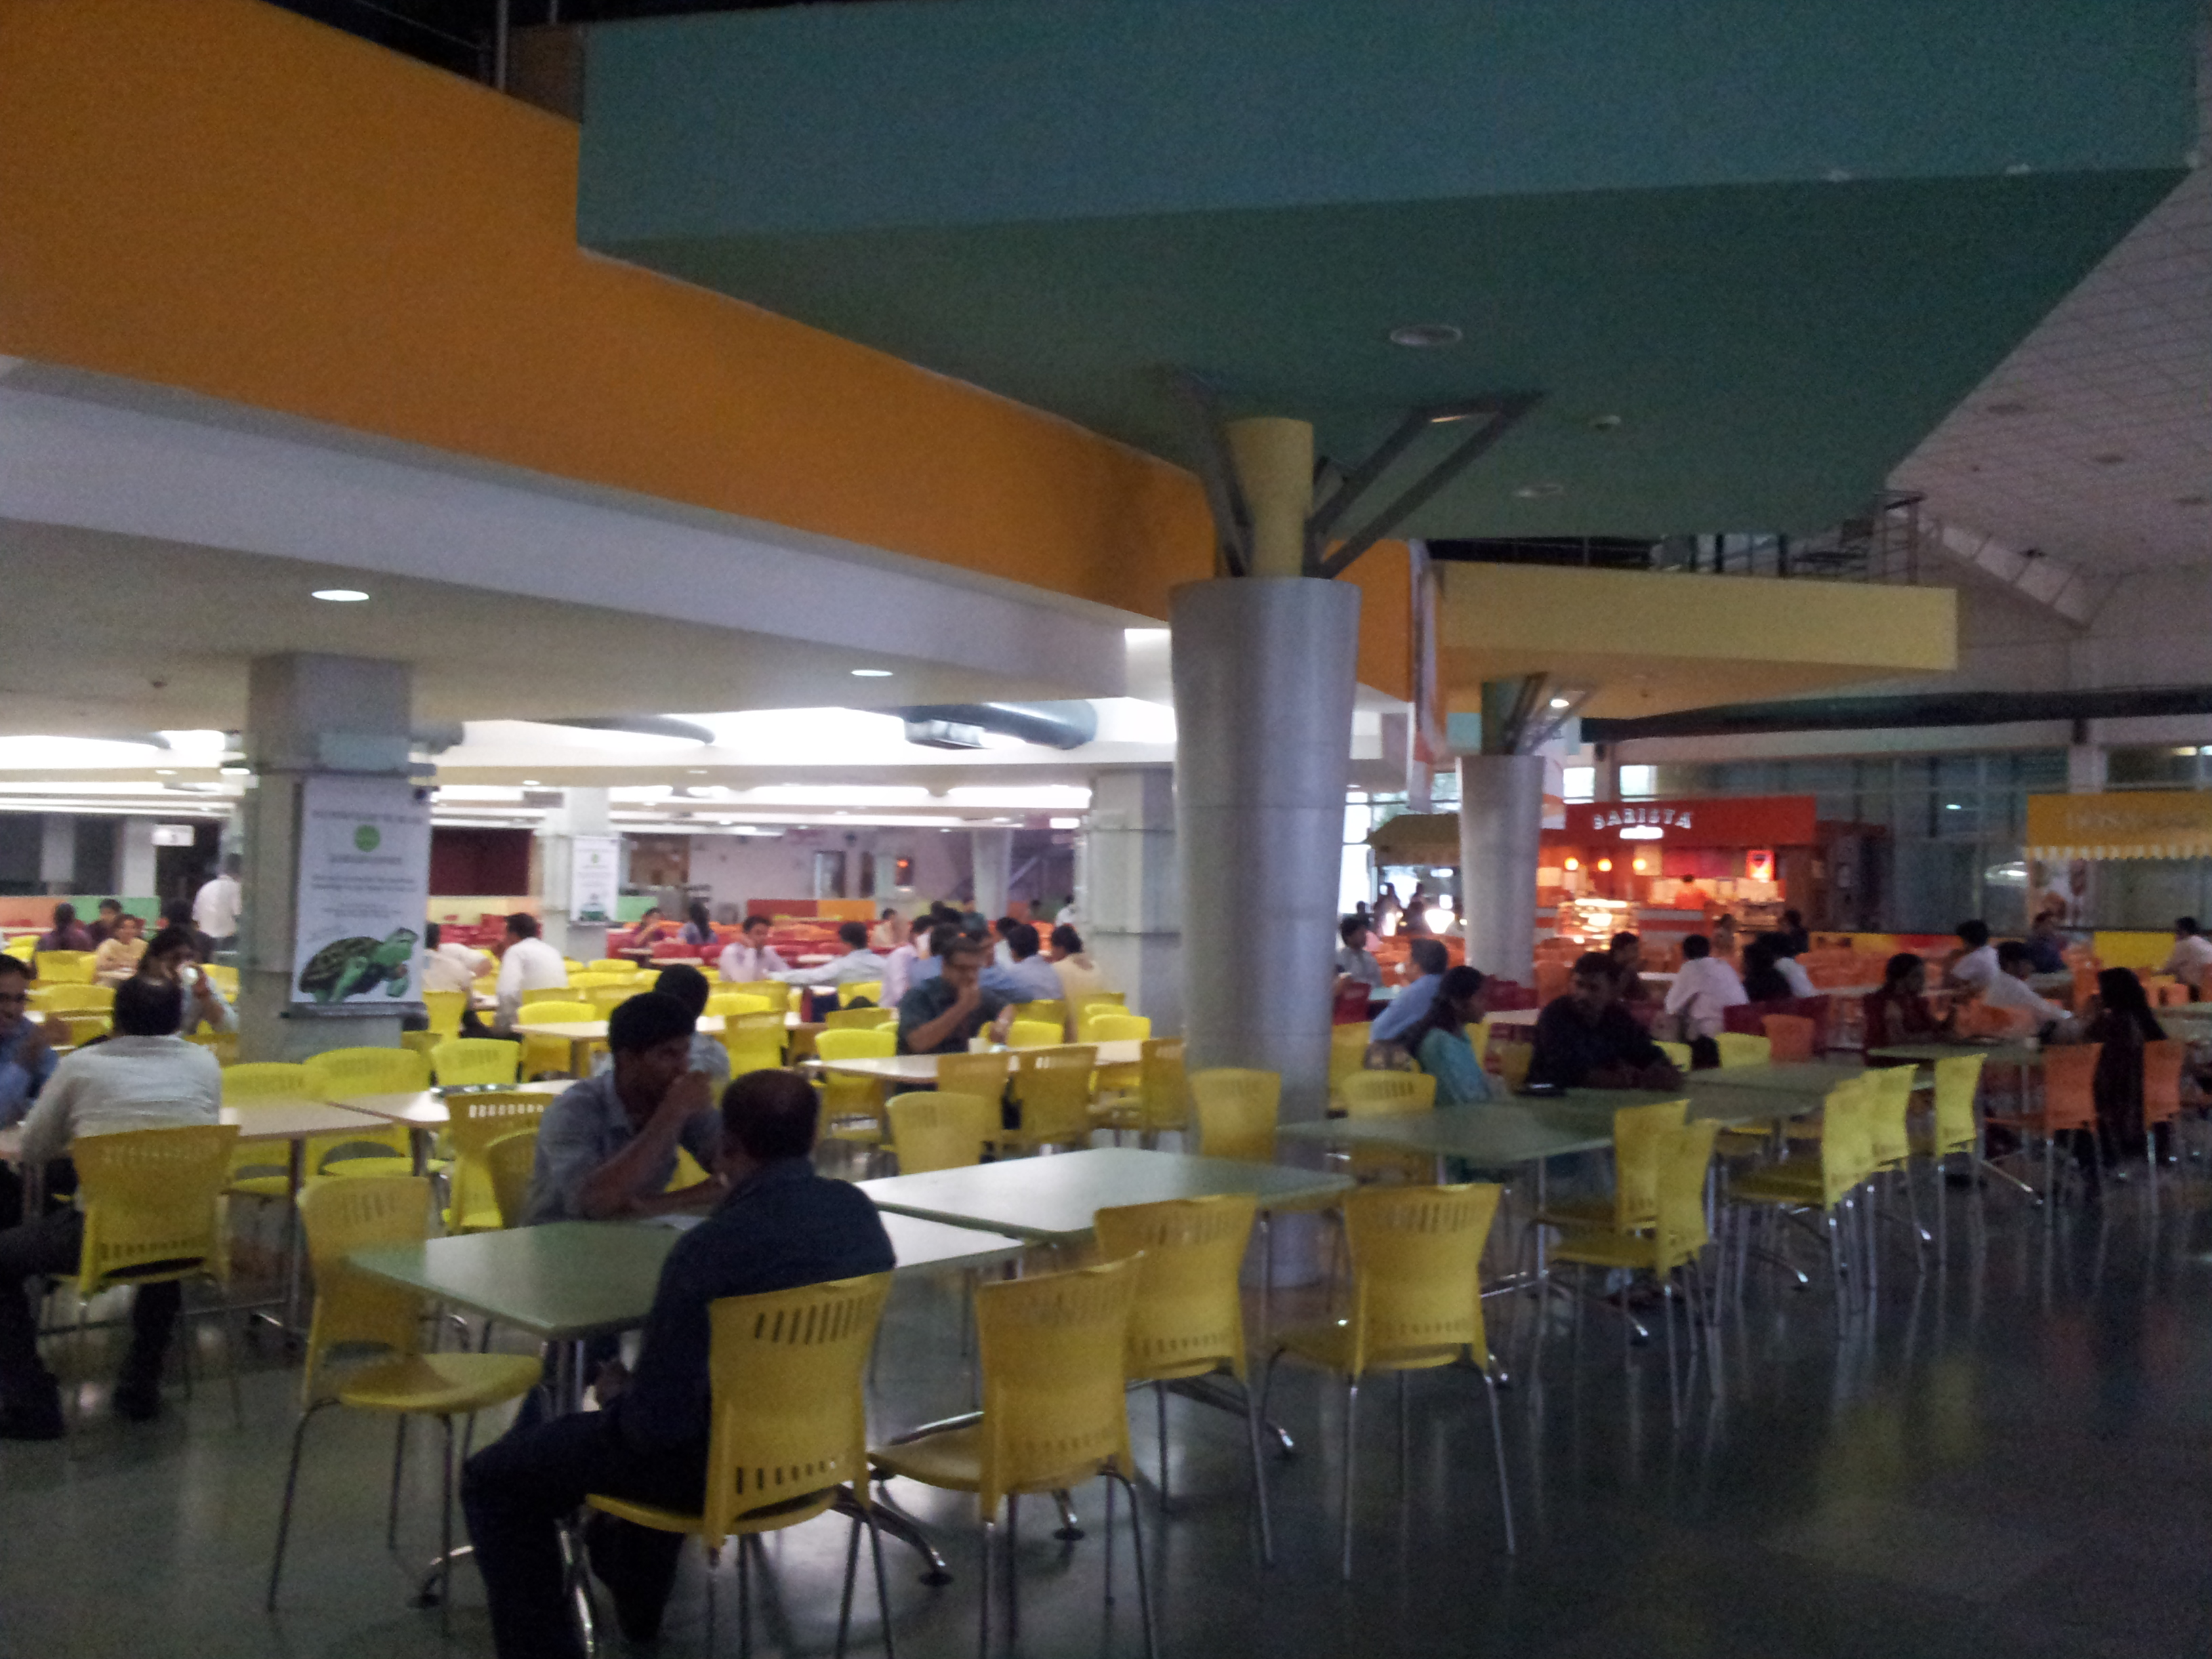 File inside center court cafeteria wipro sarjapur office photo - Office photo ...